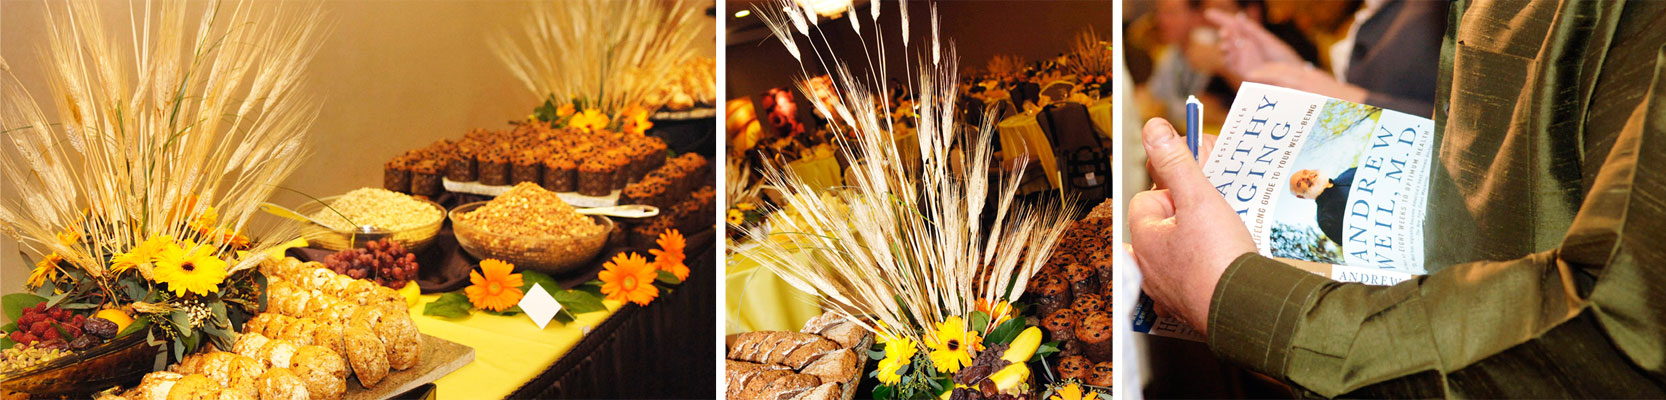 Blackburn's Catering corporate catering photos